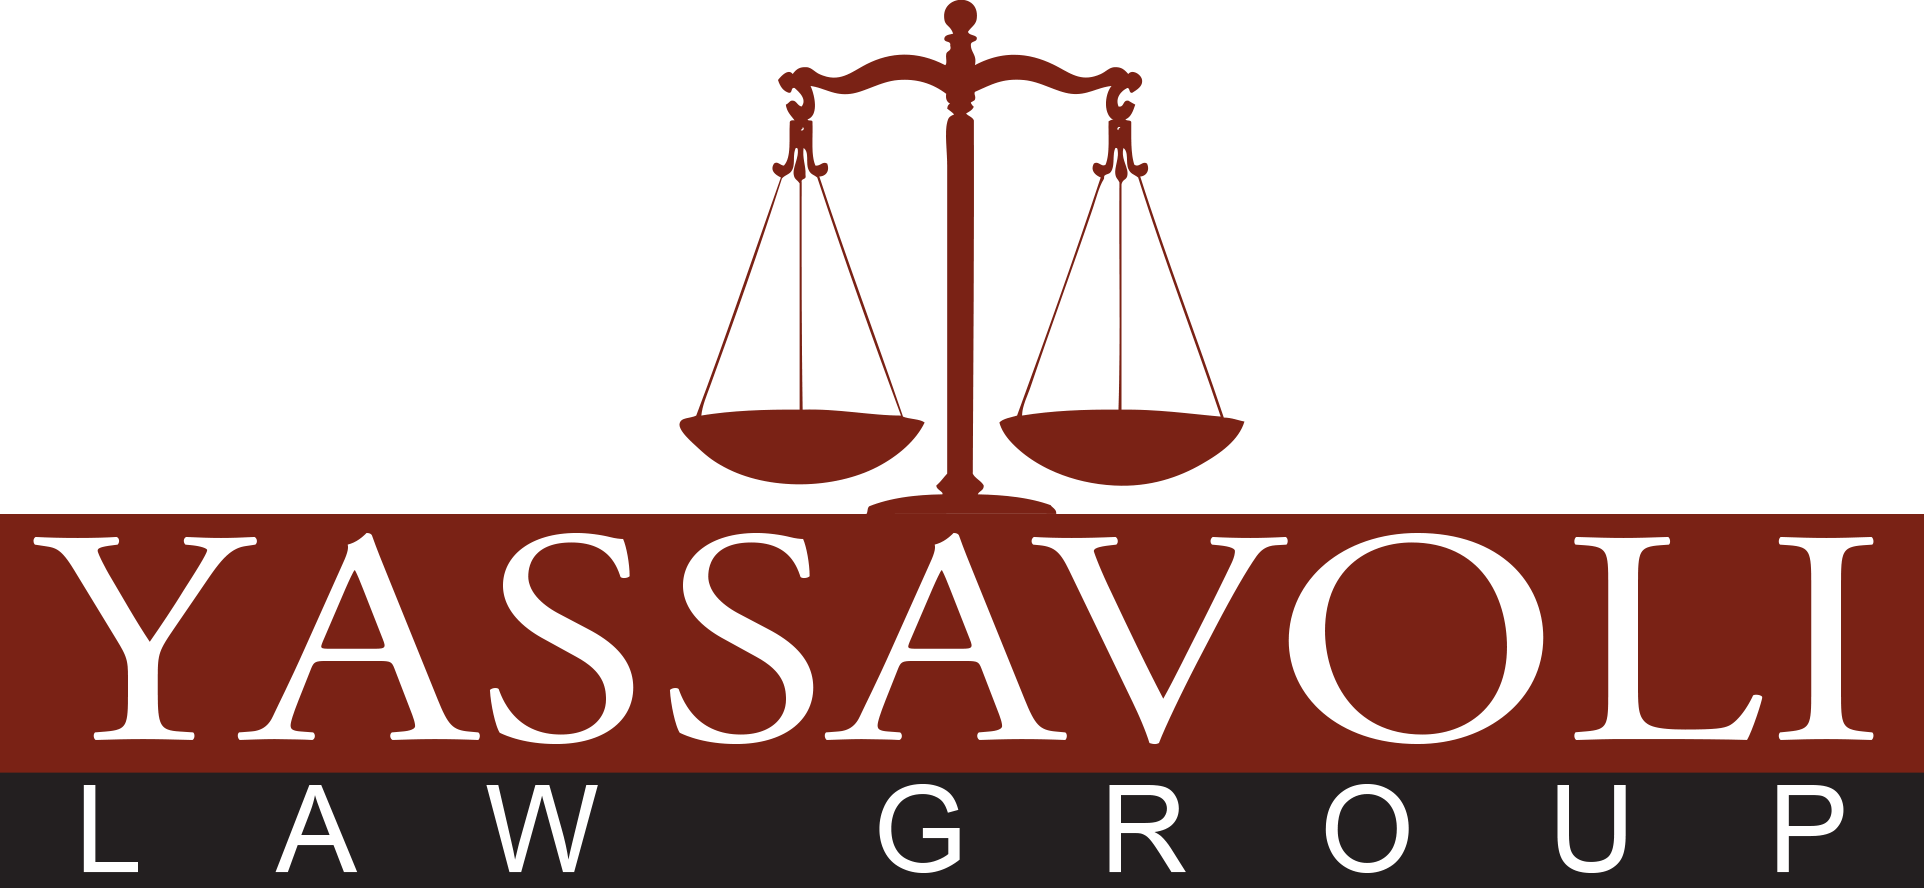 Yassavoli Law